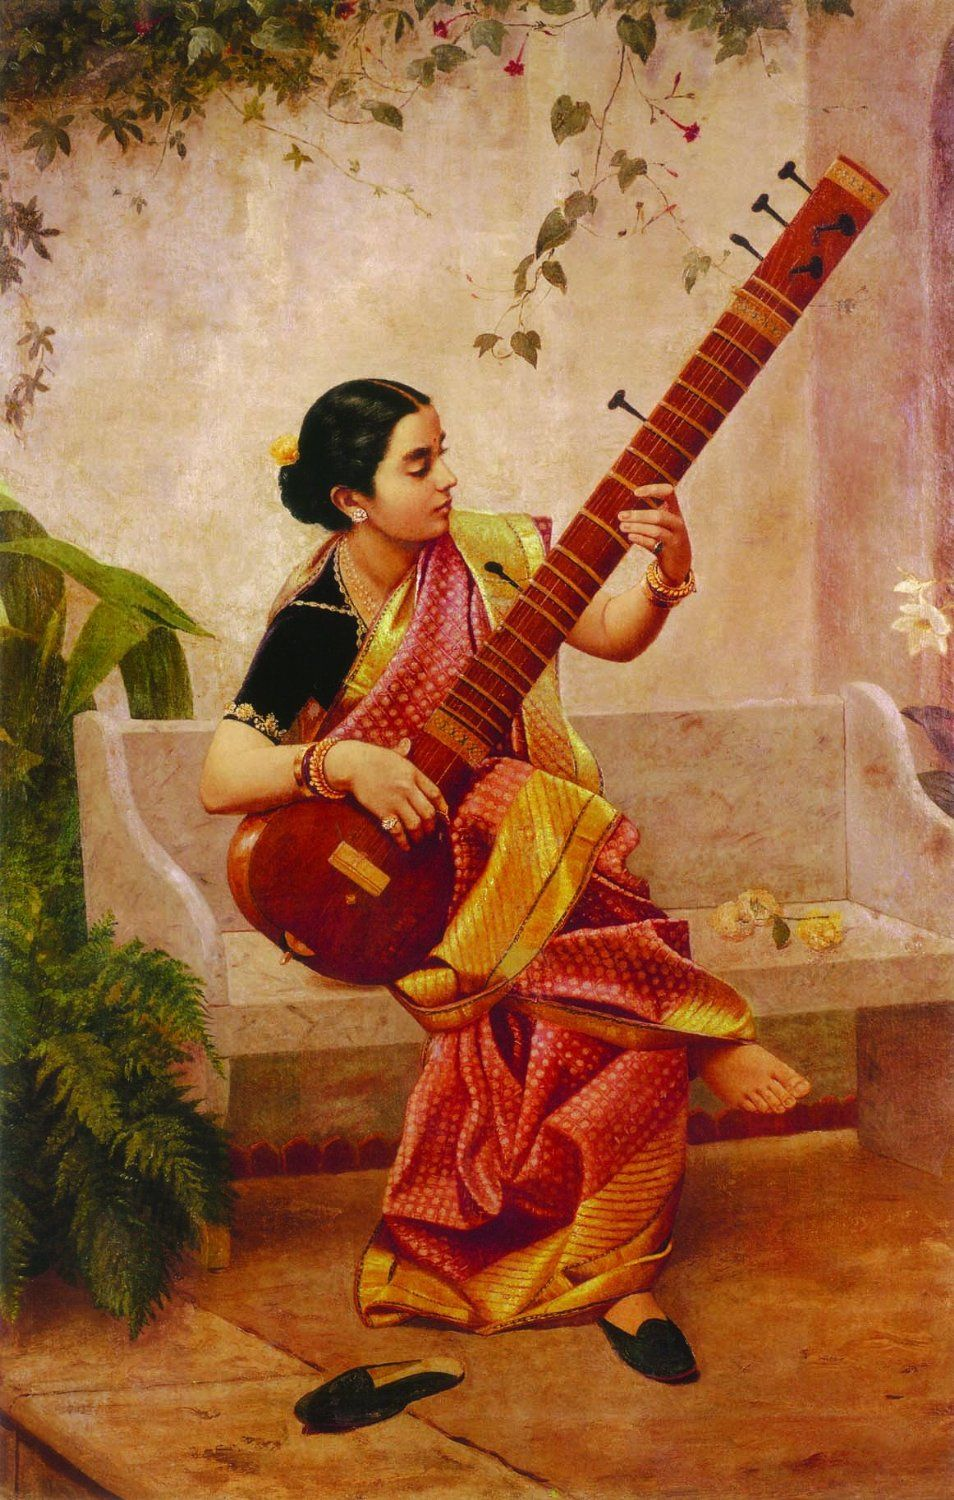 Lady with Veena |